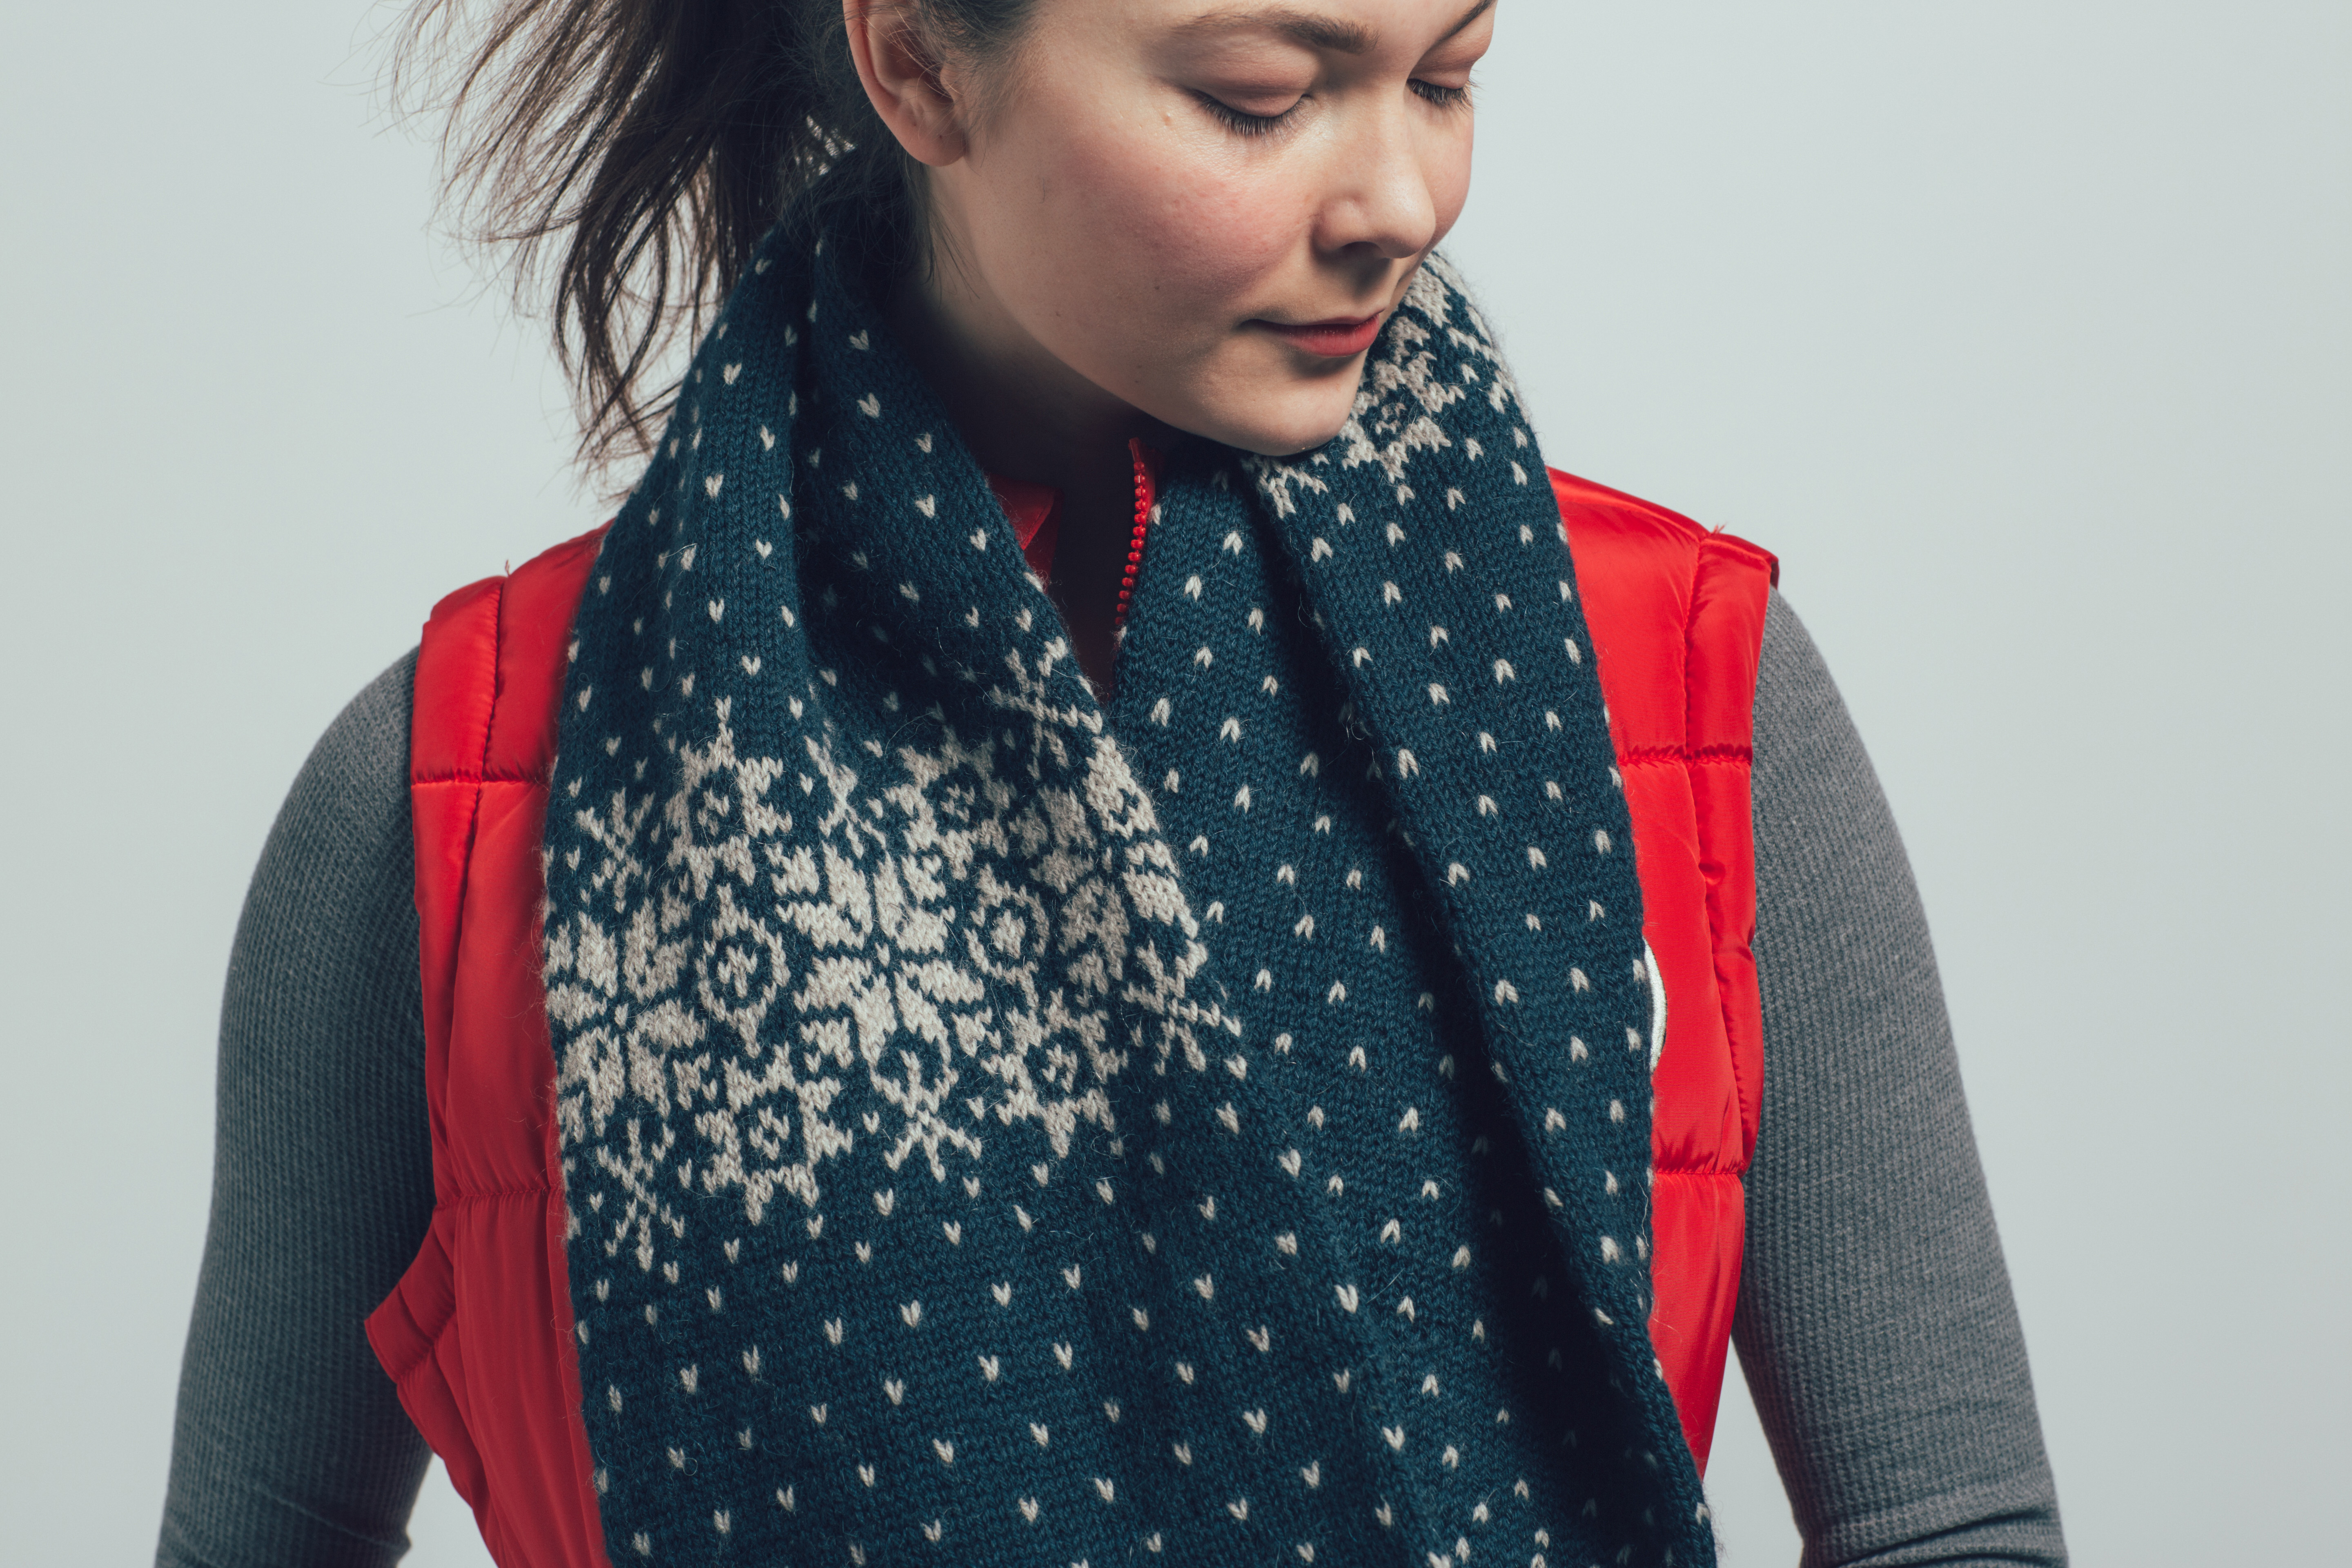 Snowflake Cowl by Jesie Ostermiller from knitscene Winter 2016